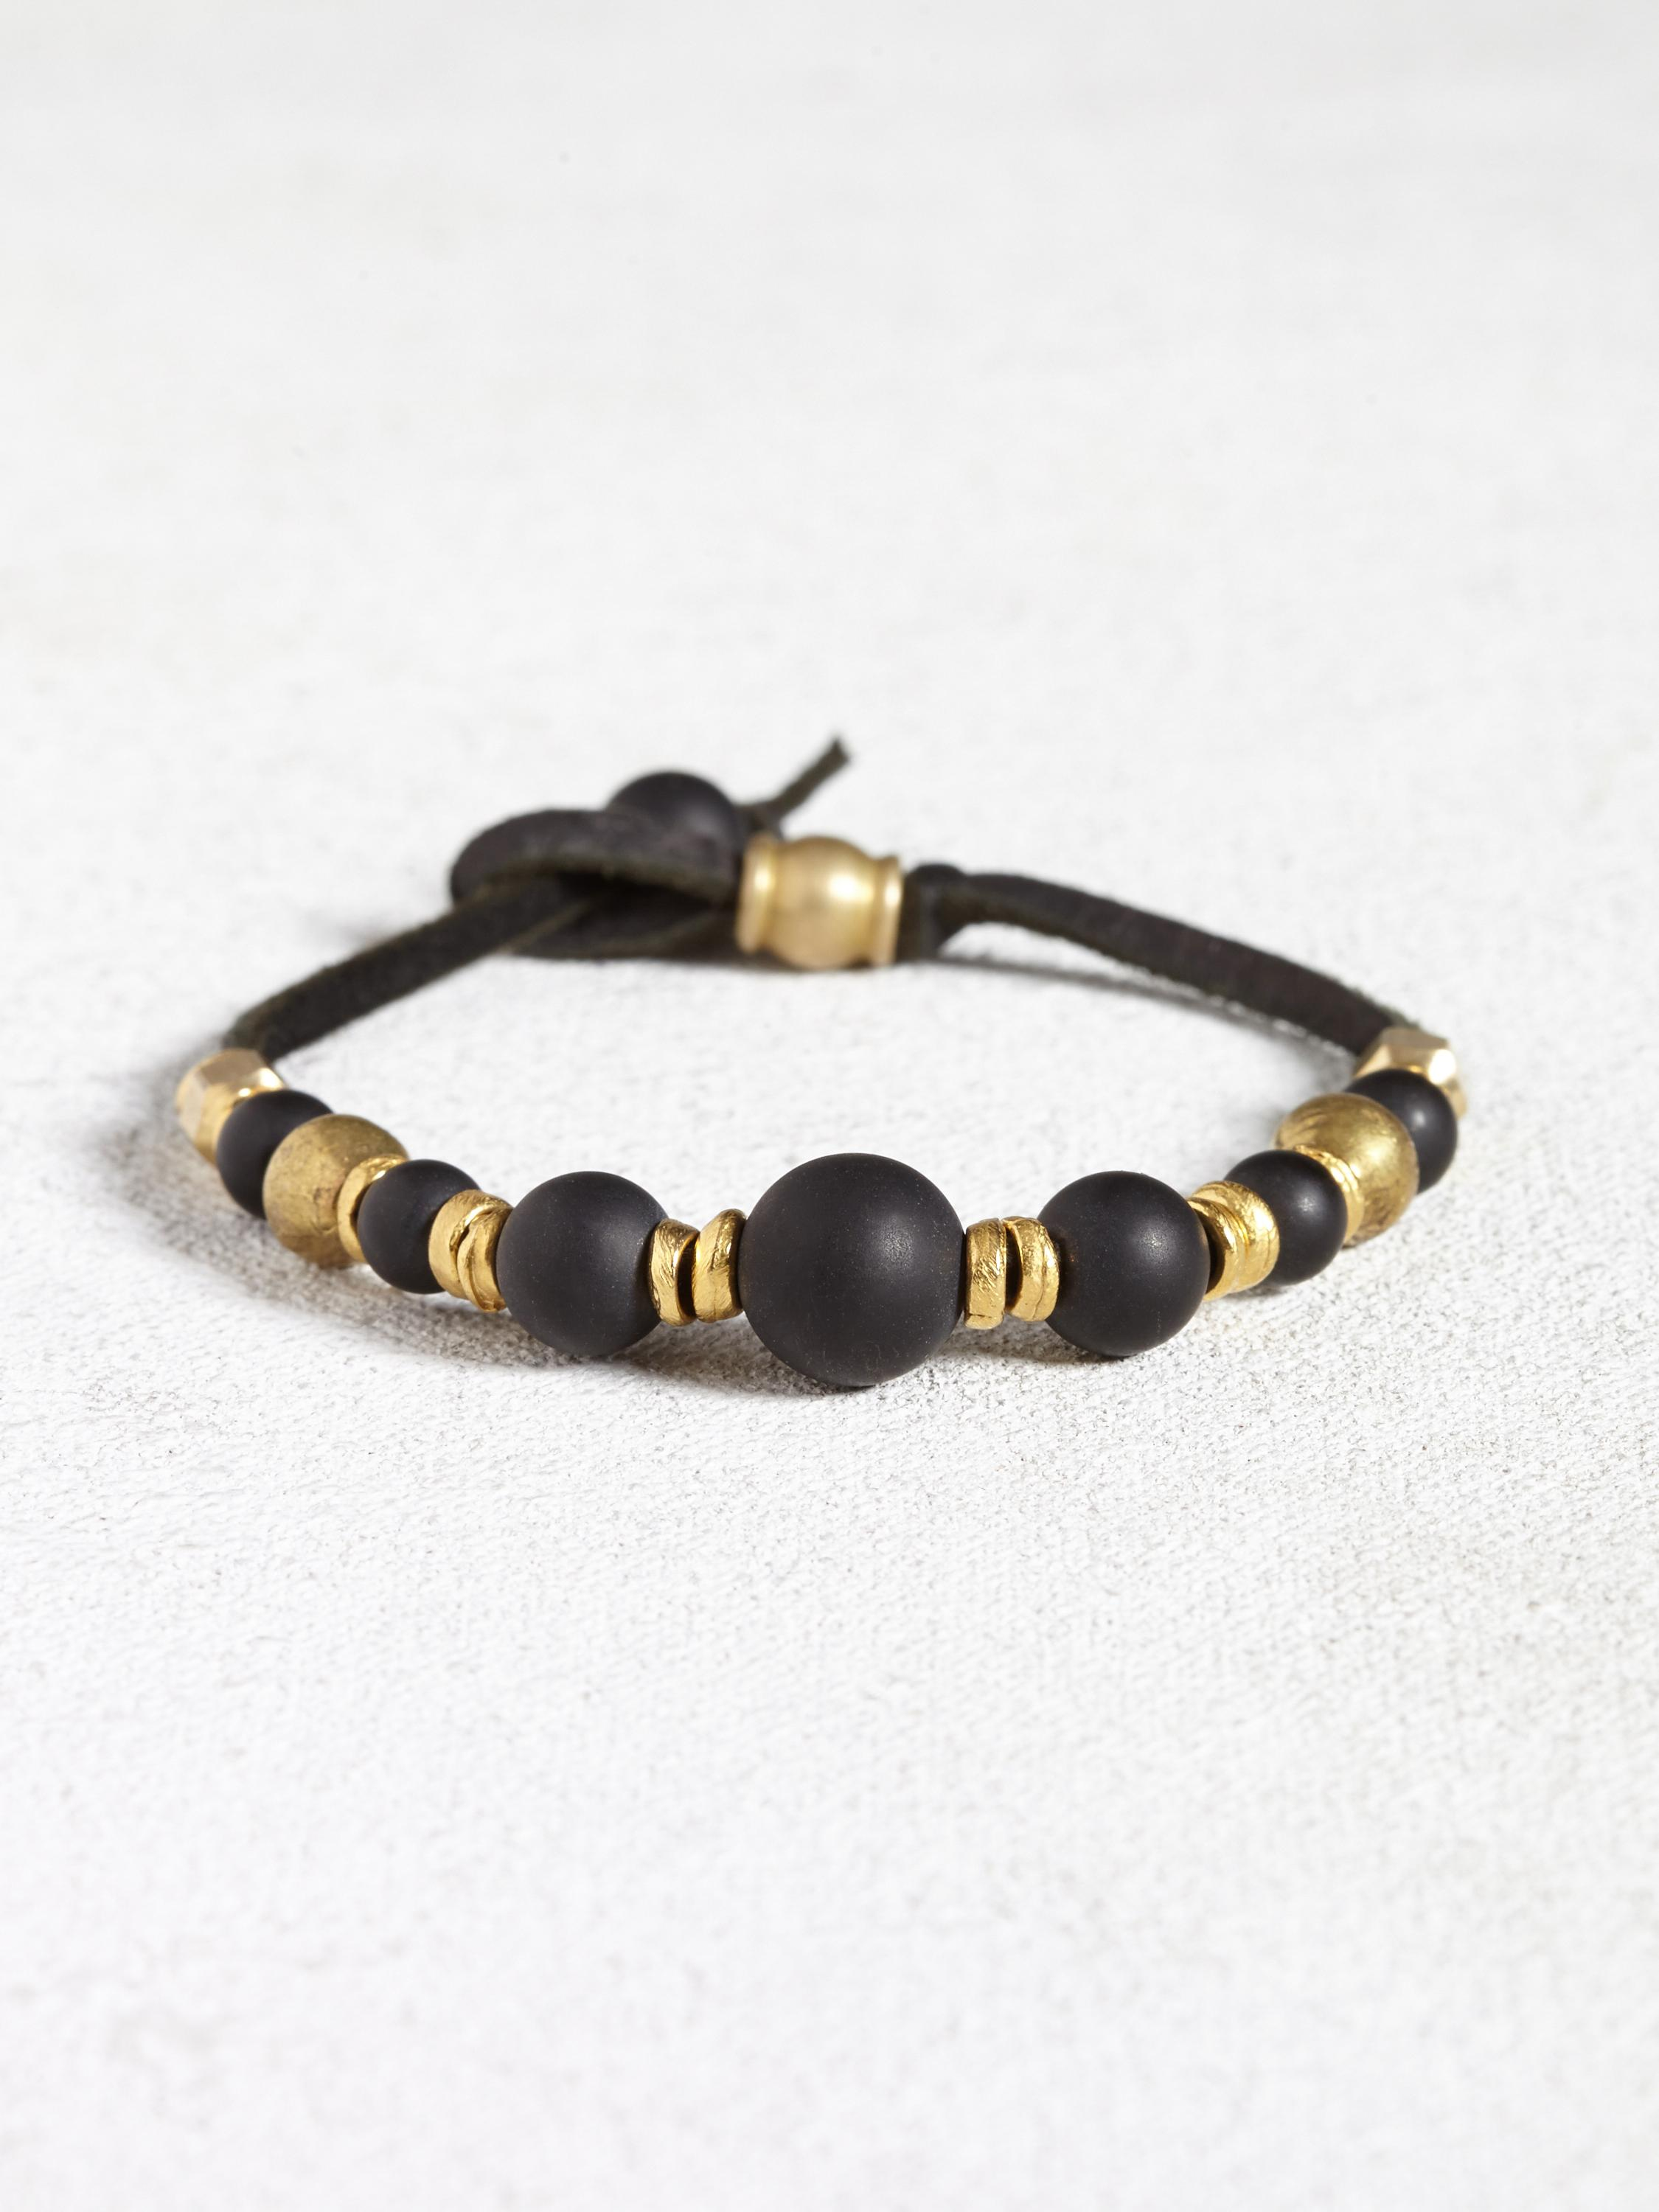 Leather Bracelet with Brass and Onyx Beads